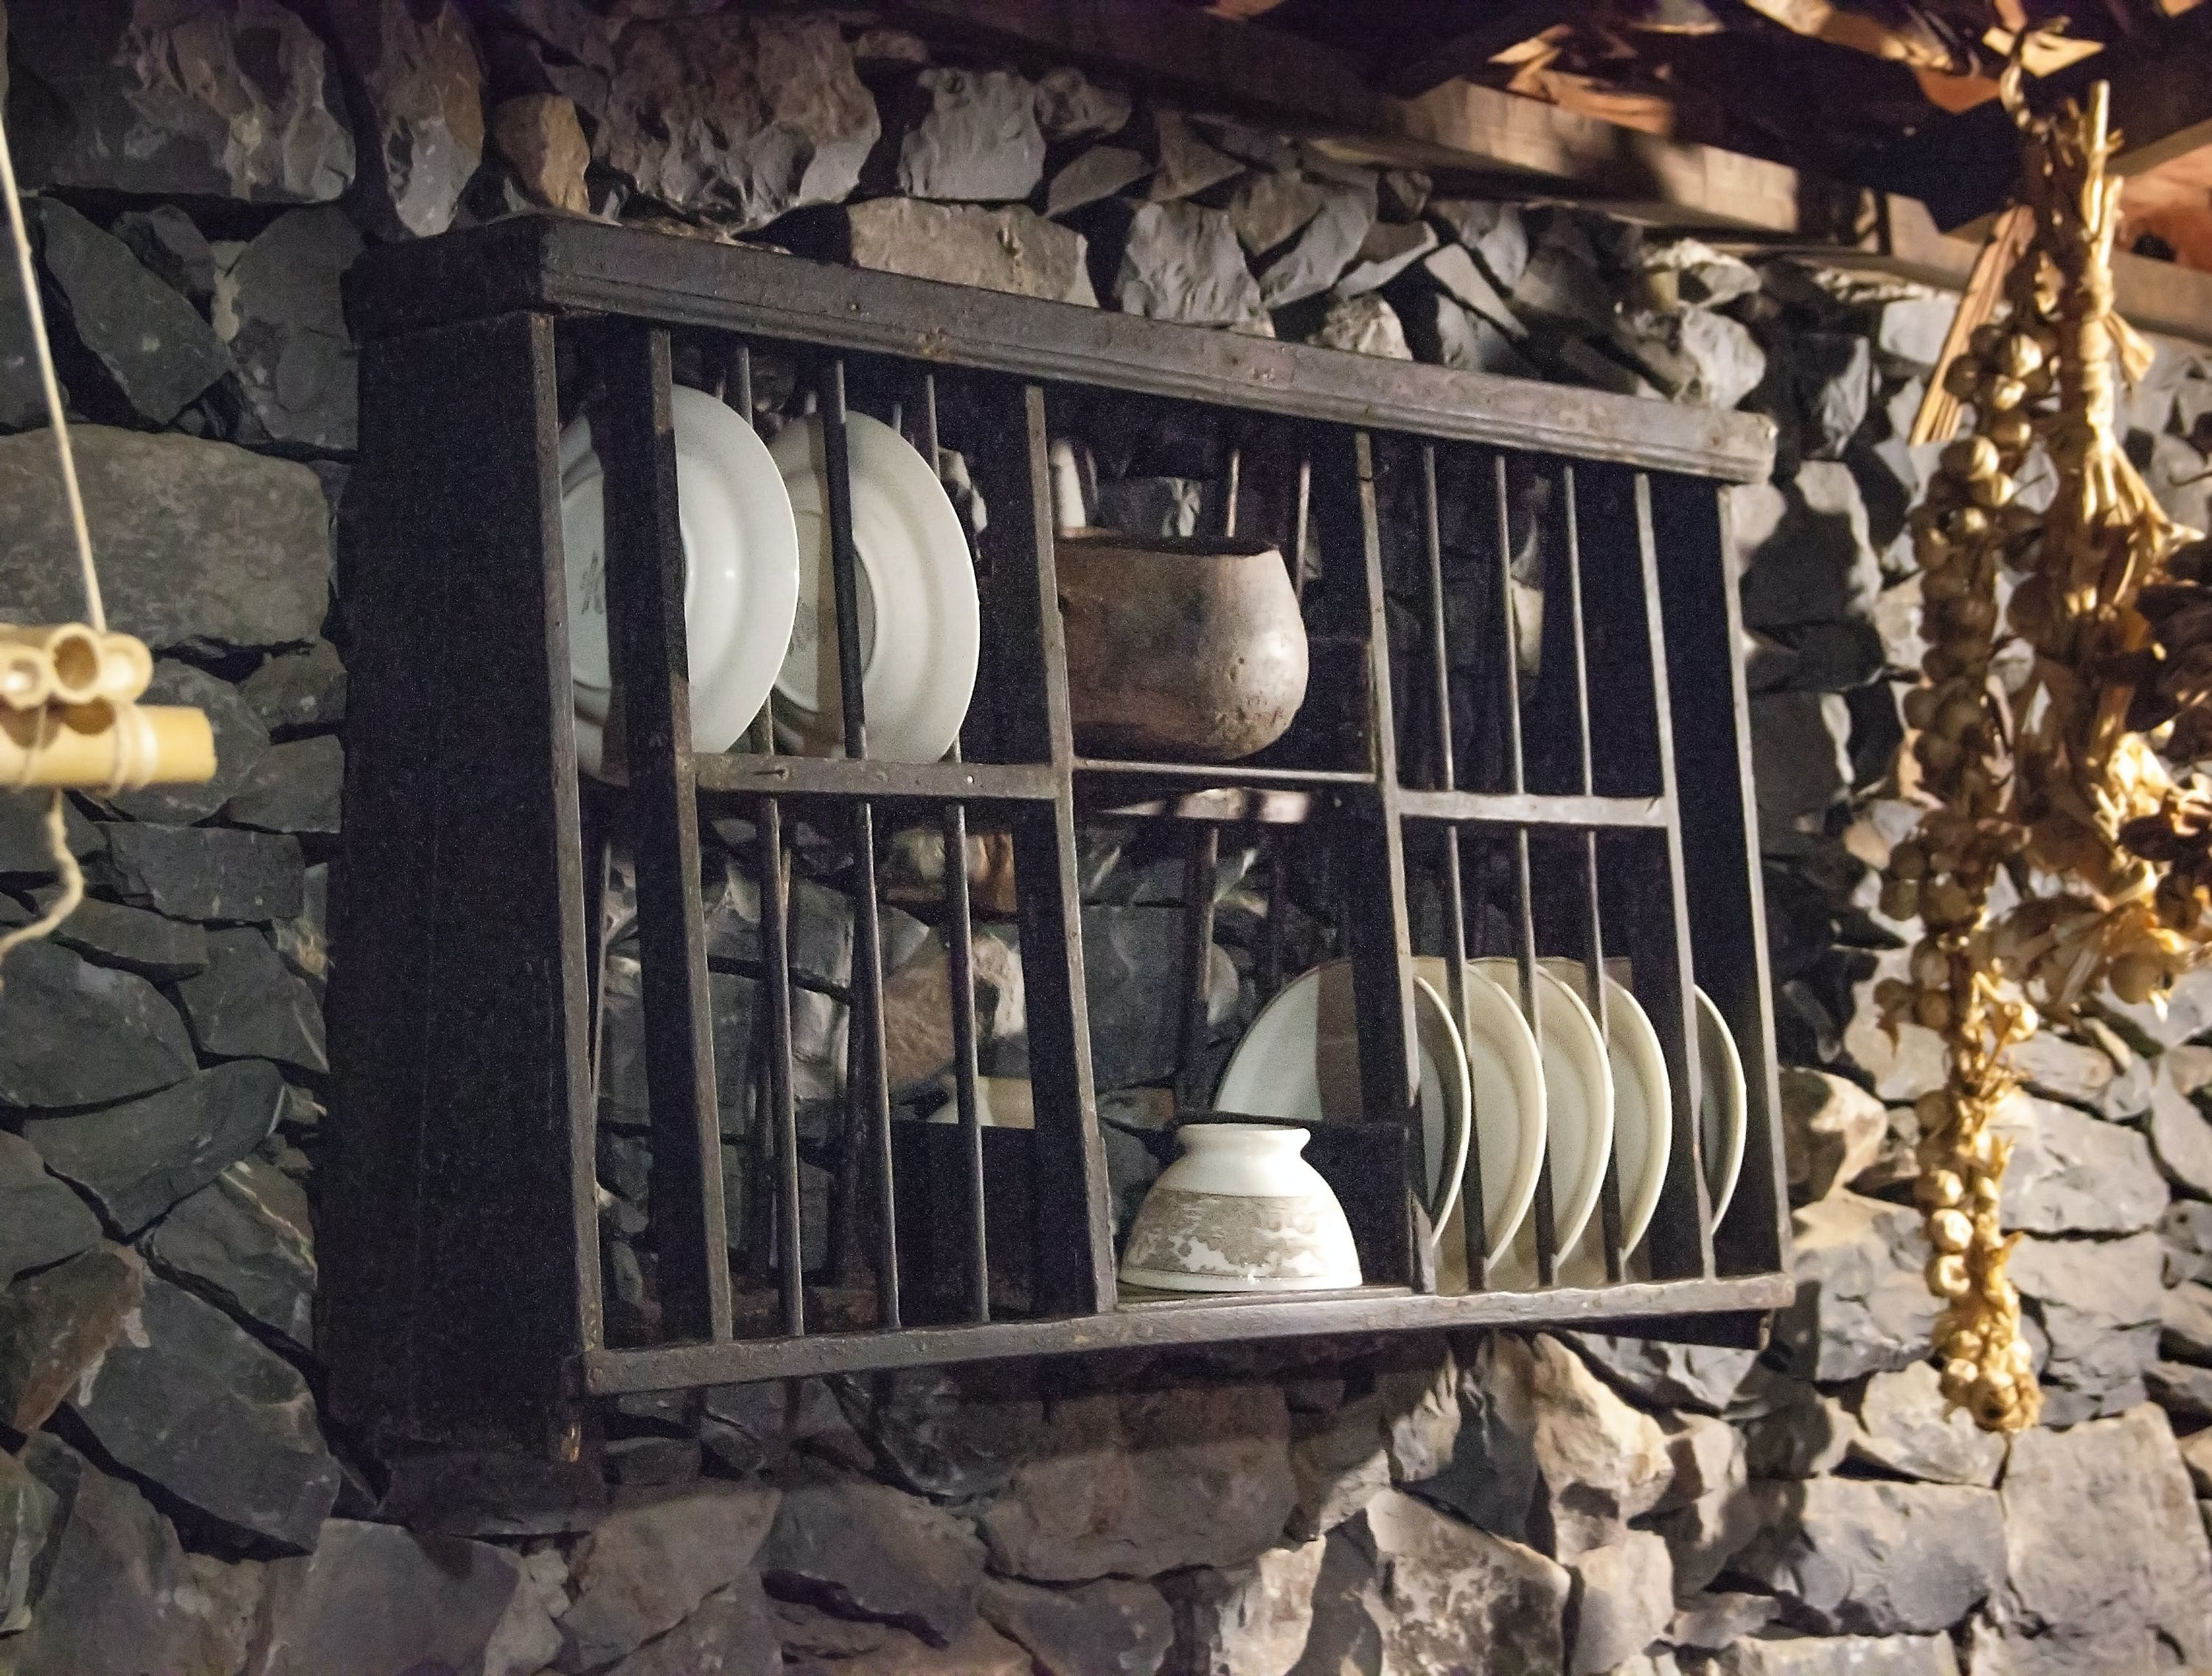 Free stock photo of old, antique, traditional, plates